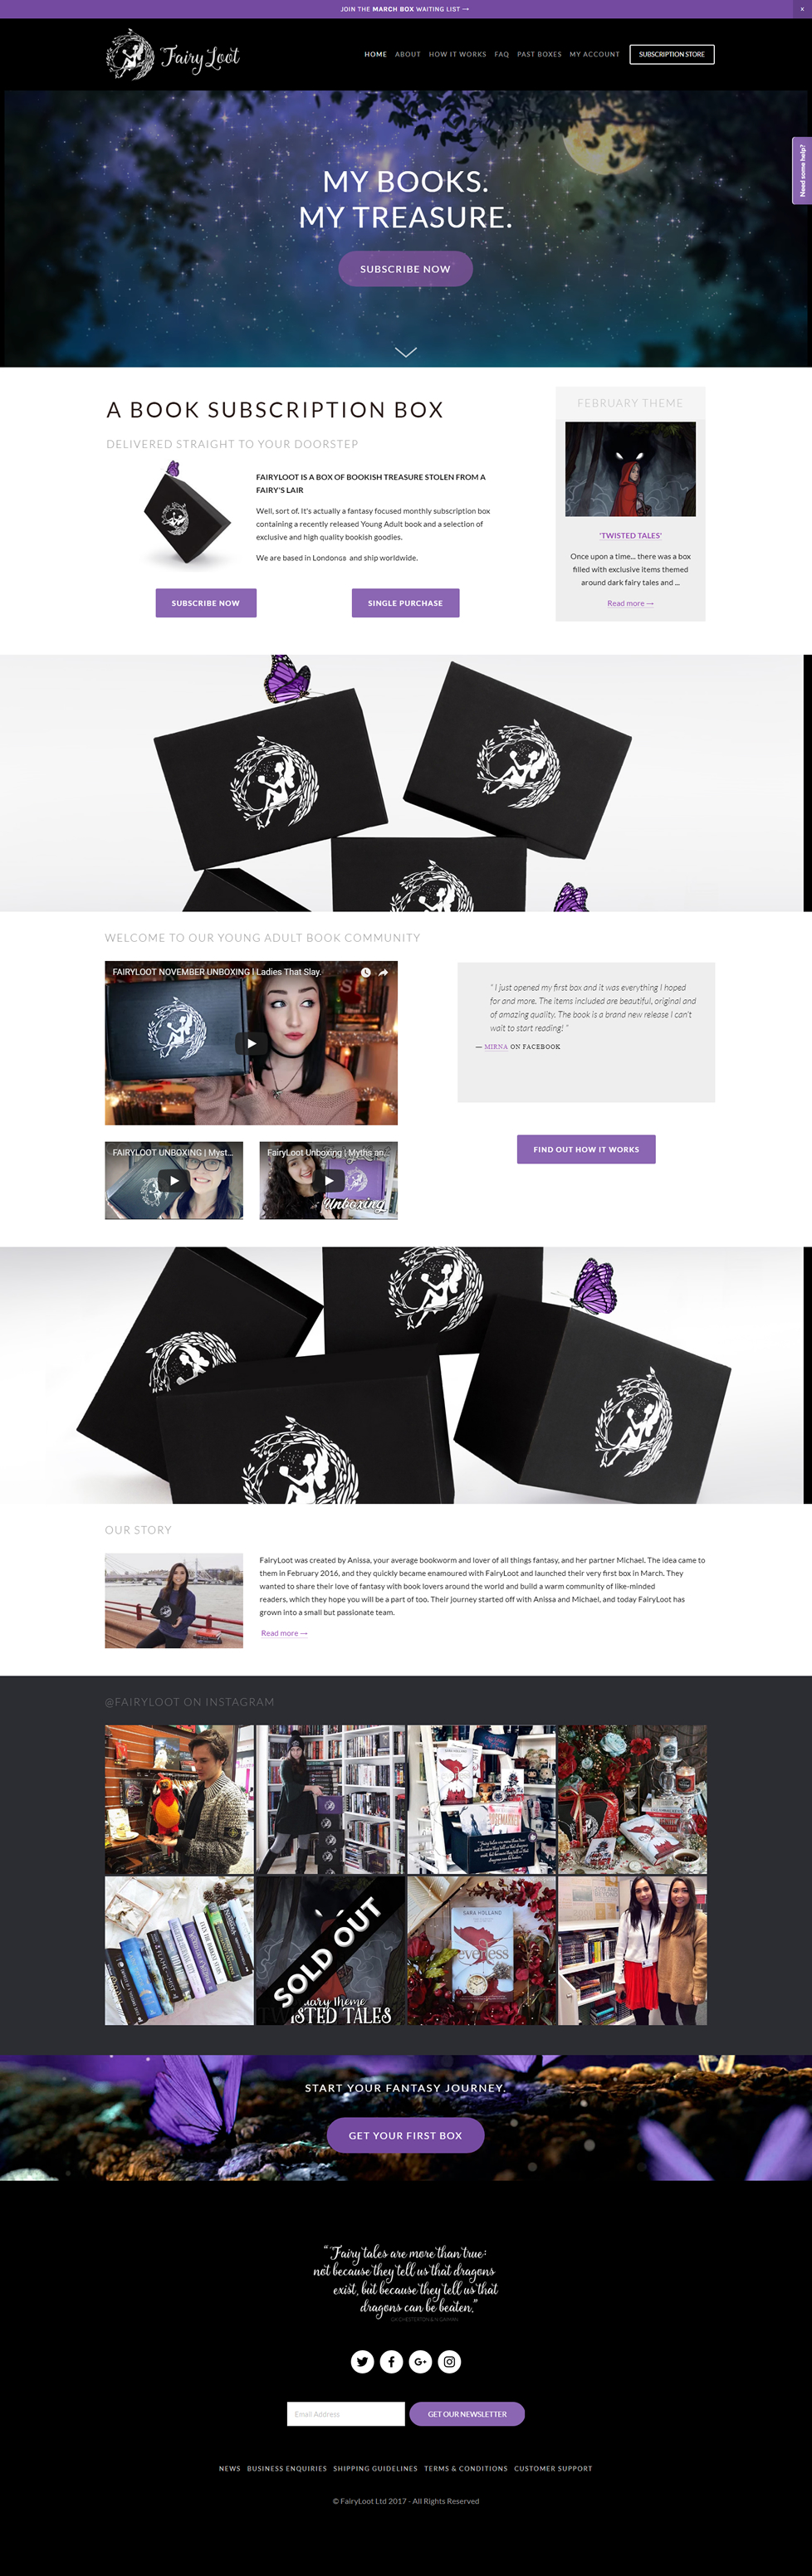 Case Study: One-off Big Traffic Optimization for Fairyloot featured image